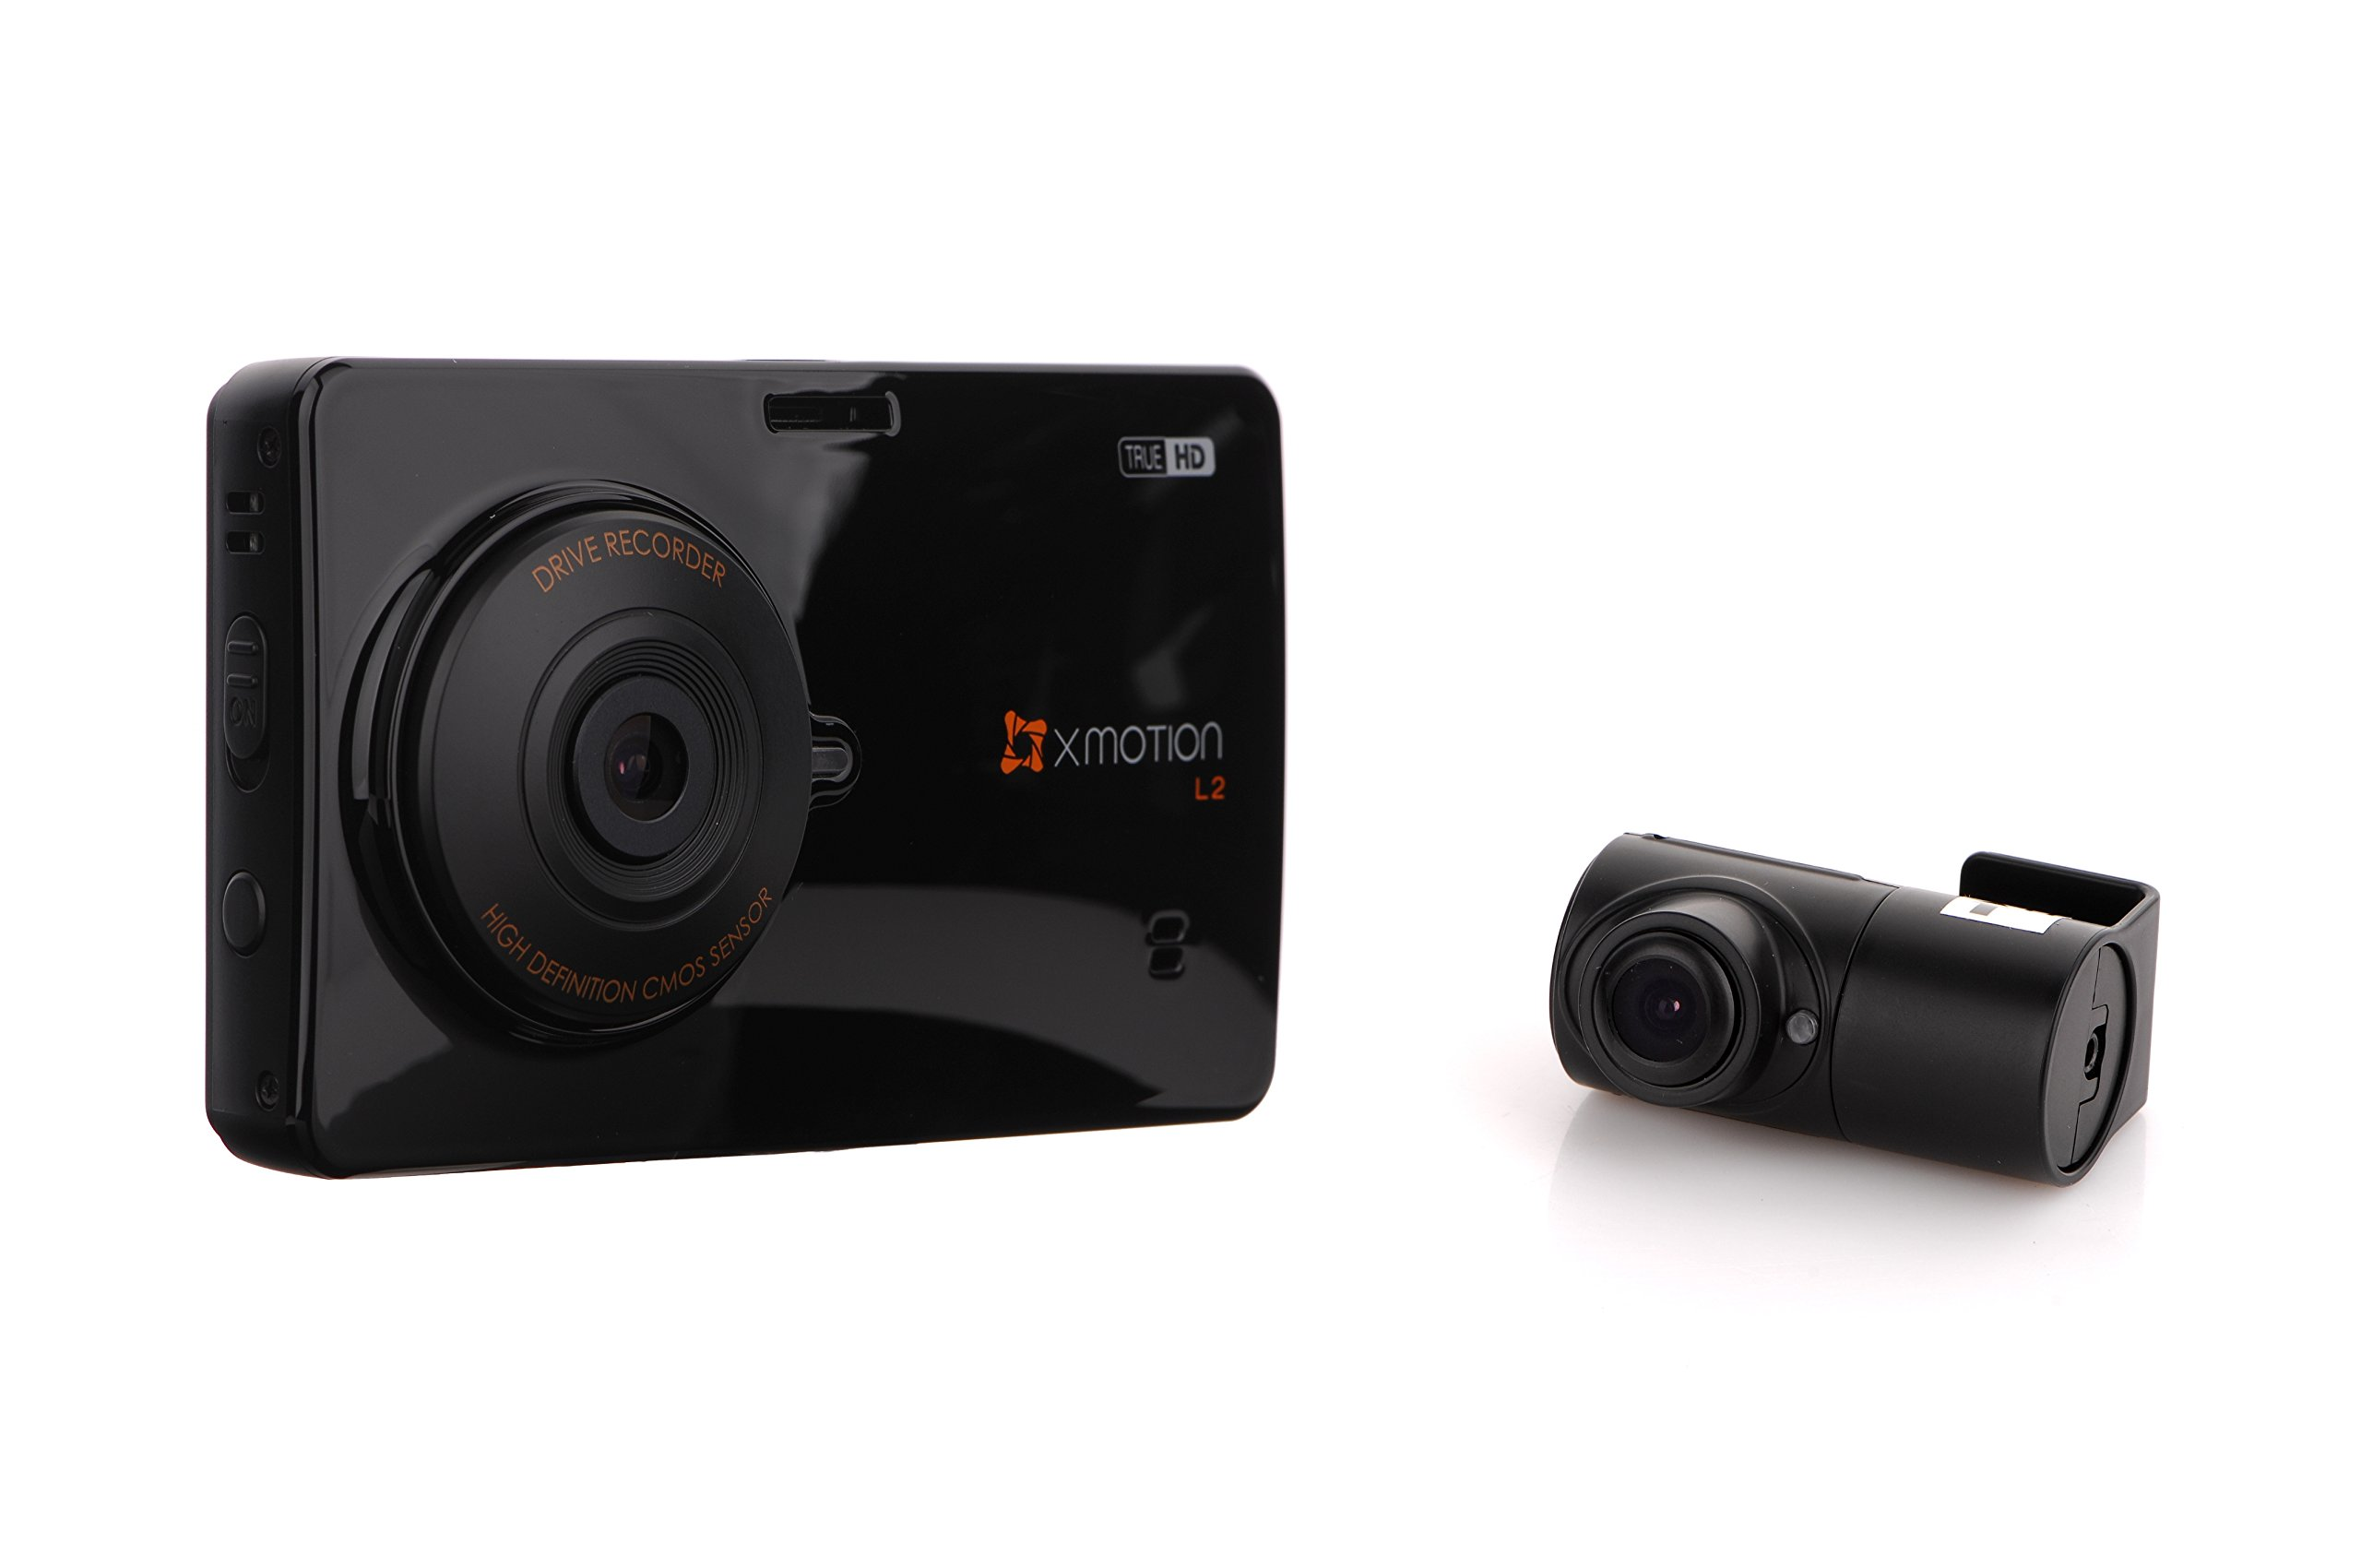 XMOTION L2: 2-Channel True HD 3.5'' Touch Screen Front (720p) and Rear (720p) Premium In-Car Dashcam(Black Box) 16GB Storage